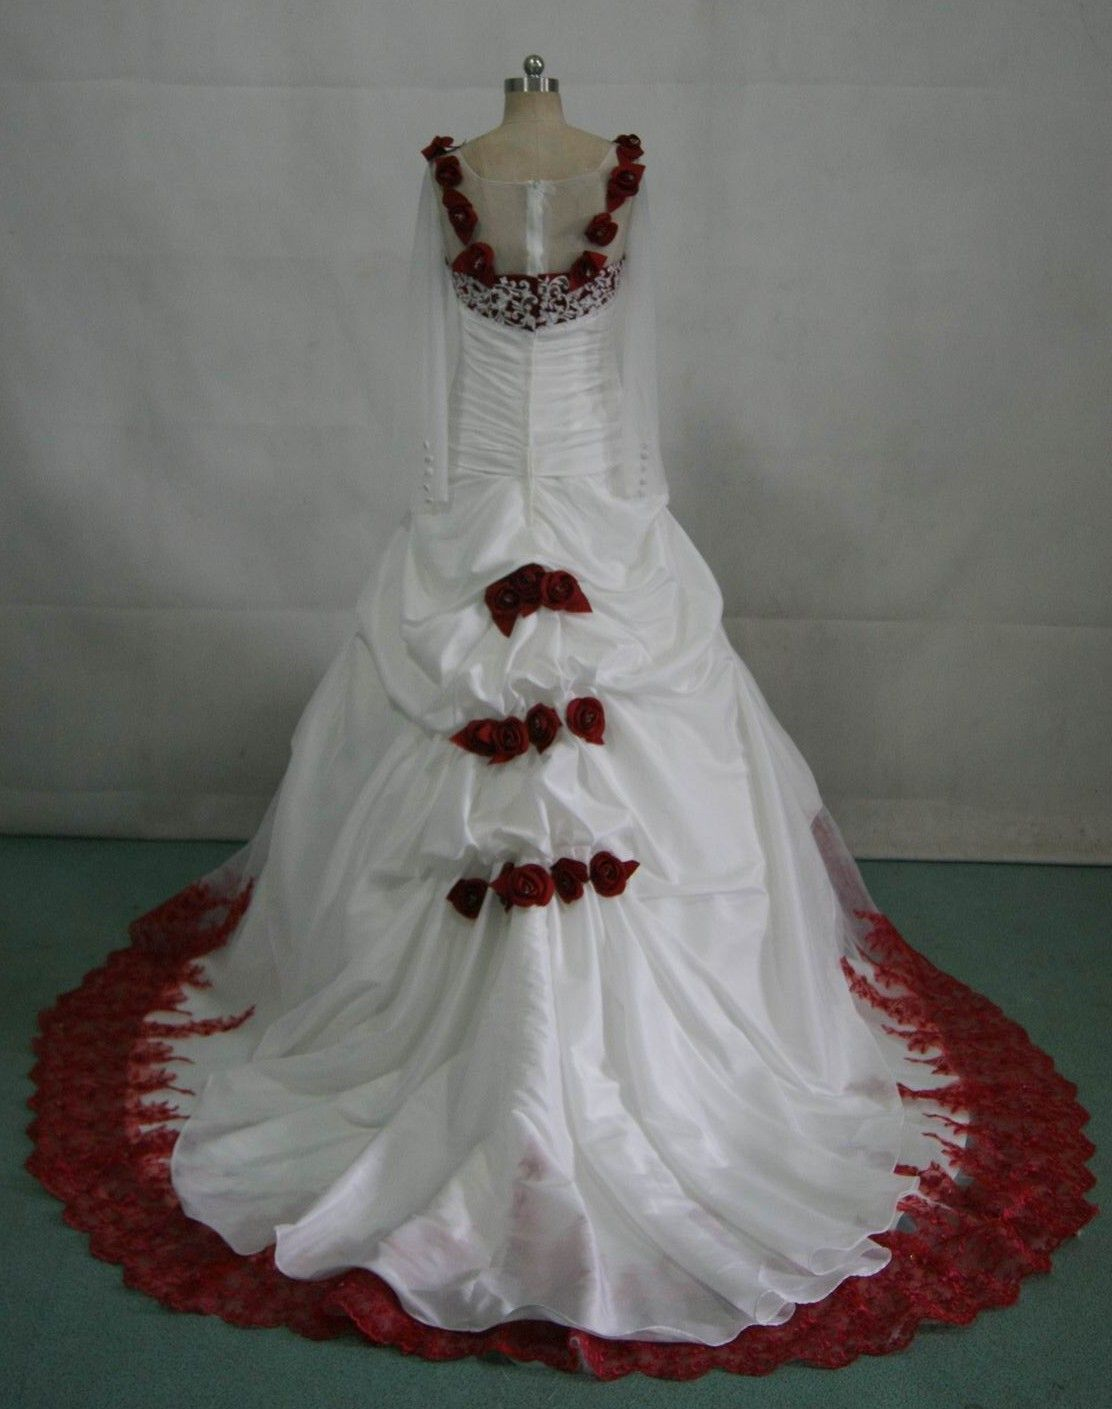 White Wedding Gown With Red Roses On The Dress